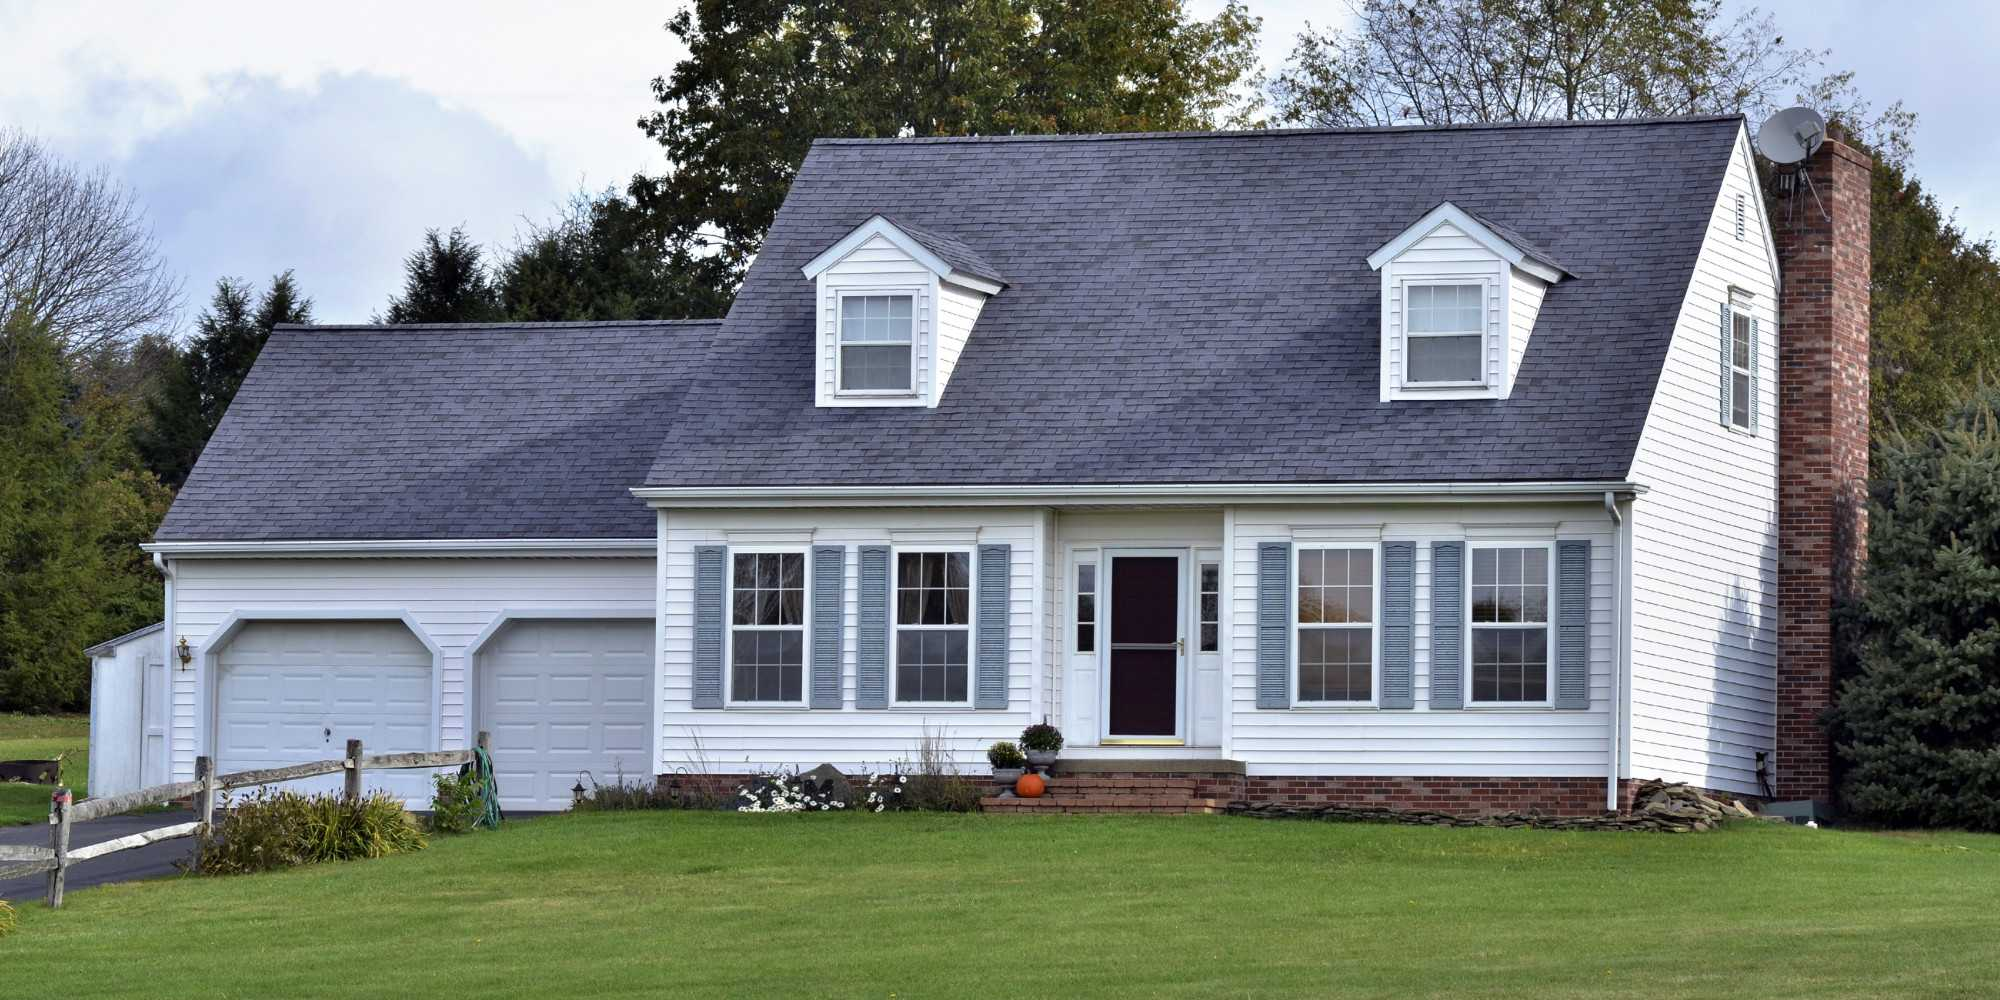 Roofing clipart house paint. Attractive simple roof colour